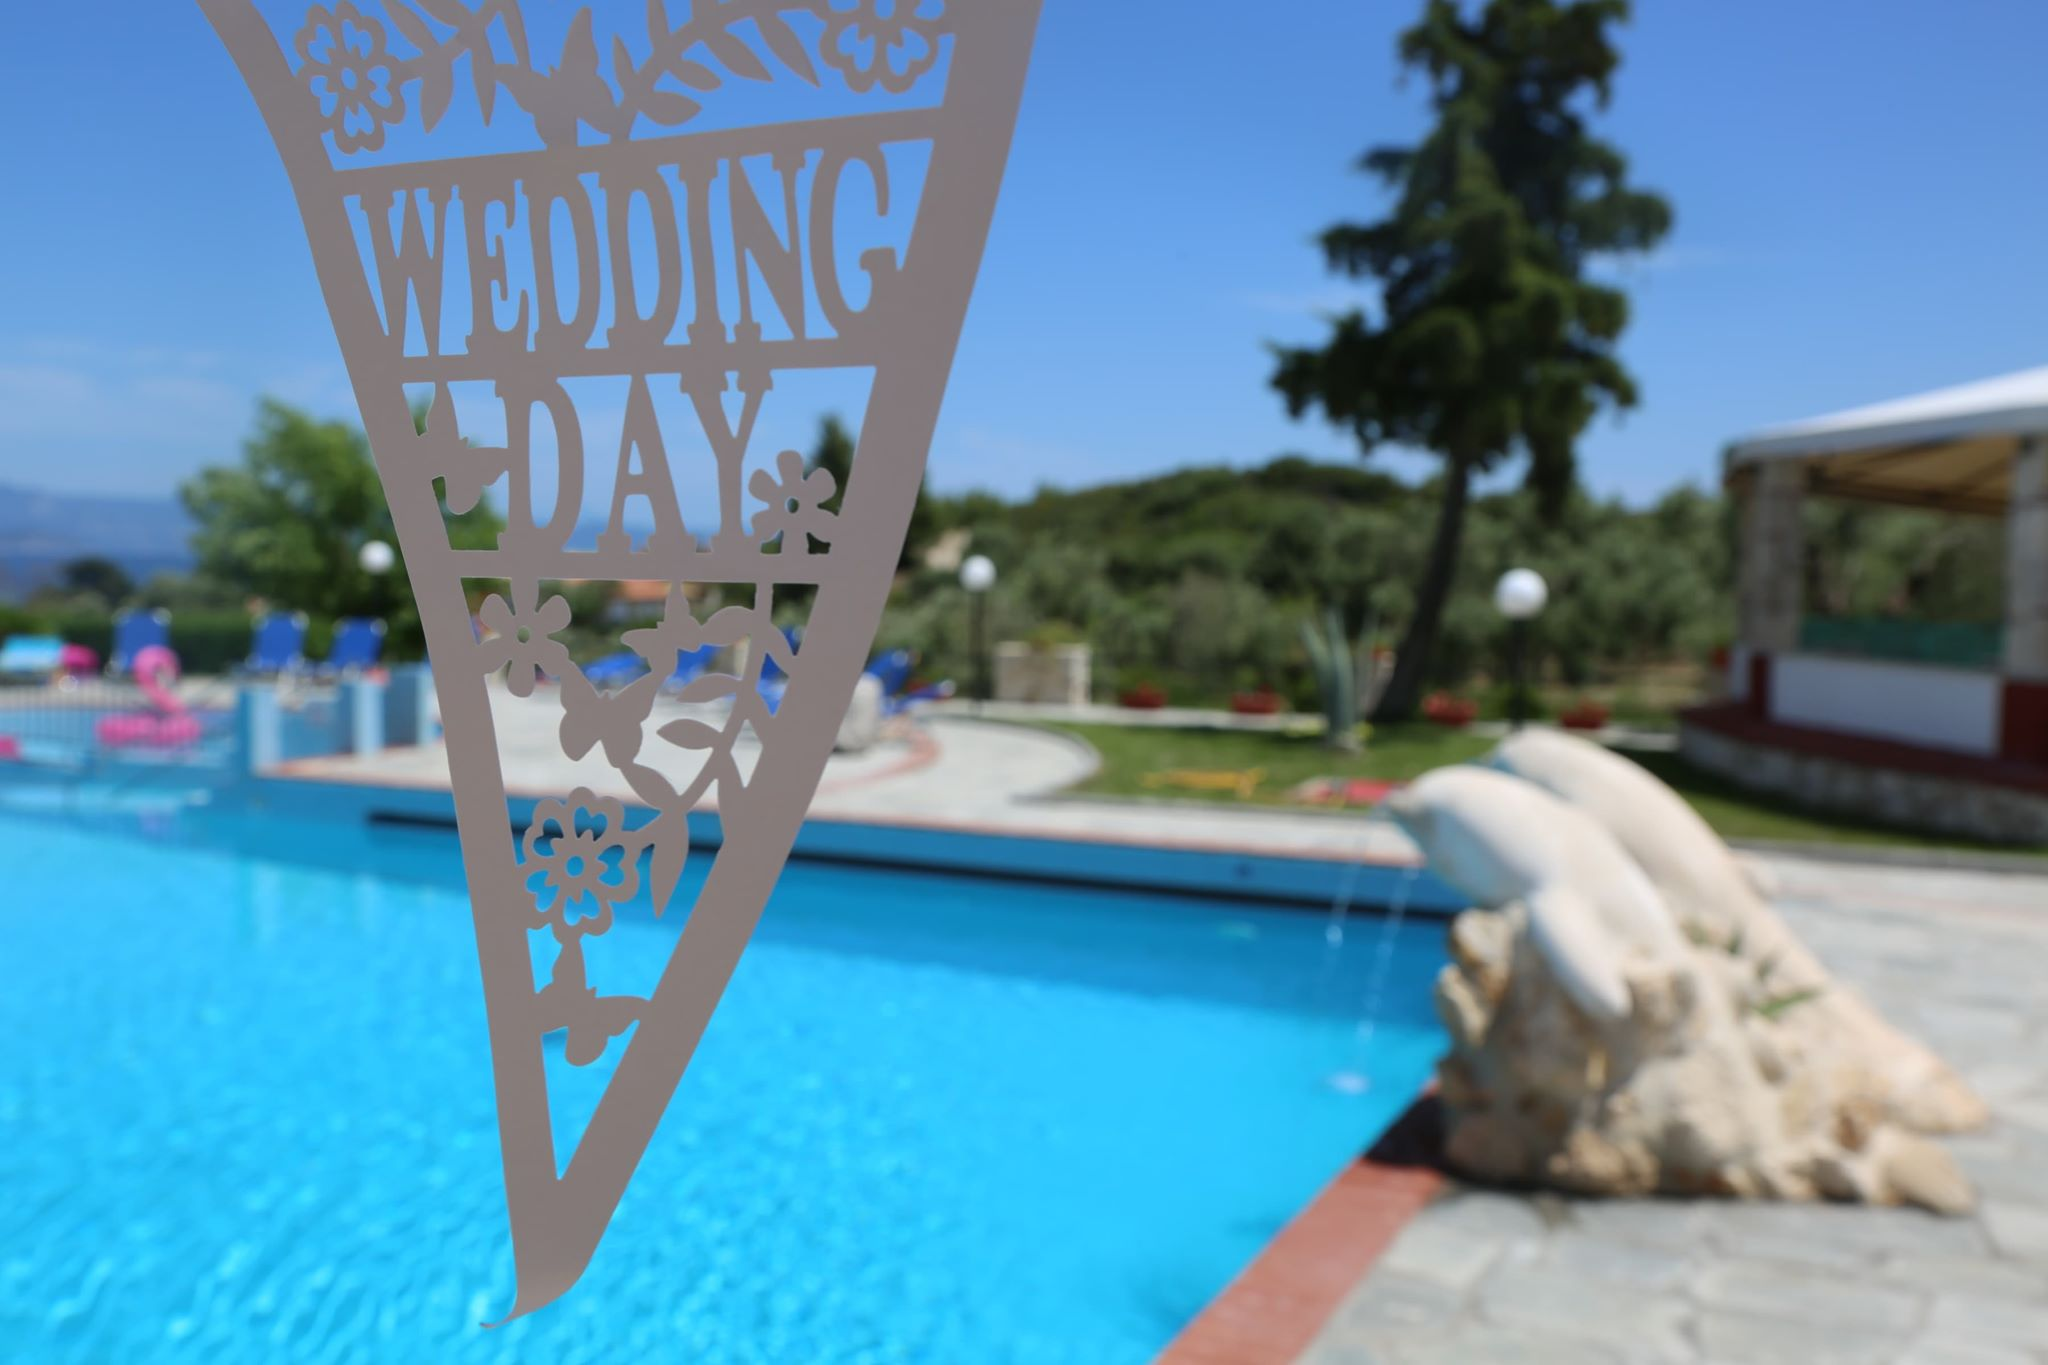 Book your wedding day in Hilltop Hotel